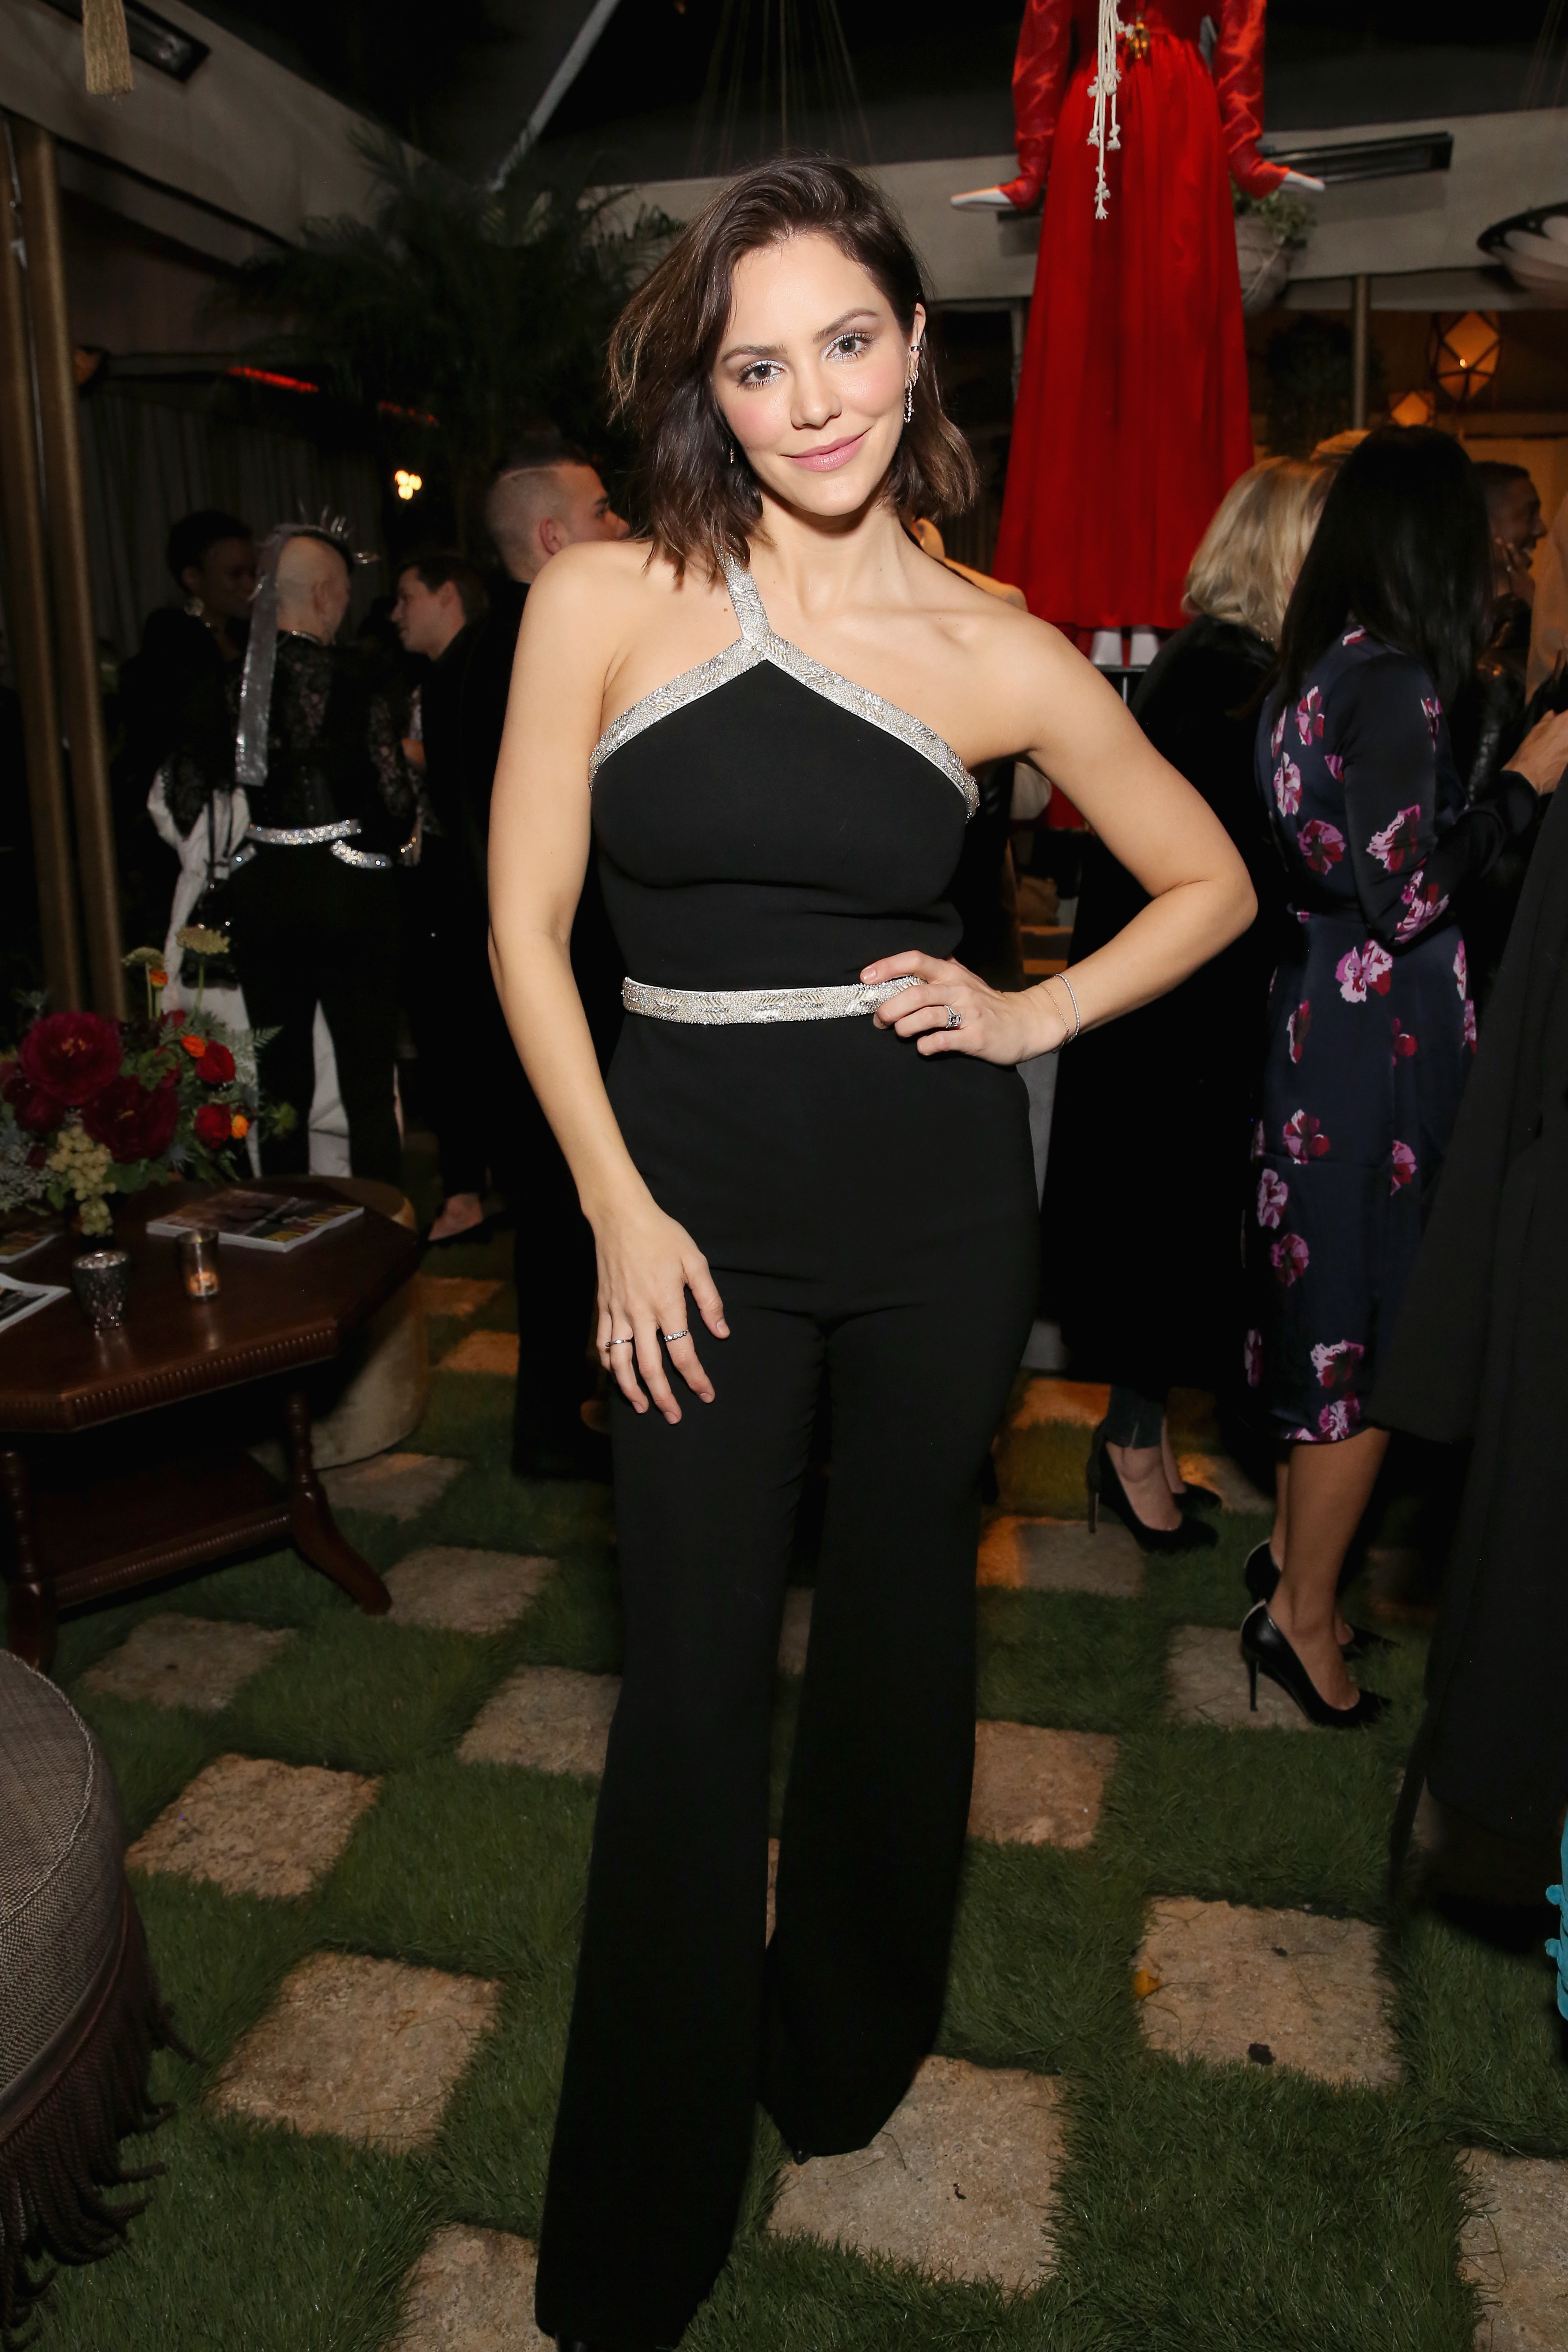 Katharine McPhee is struggling with her bridal party choice